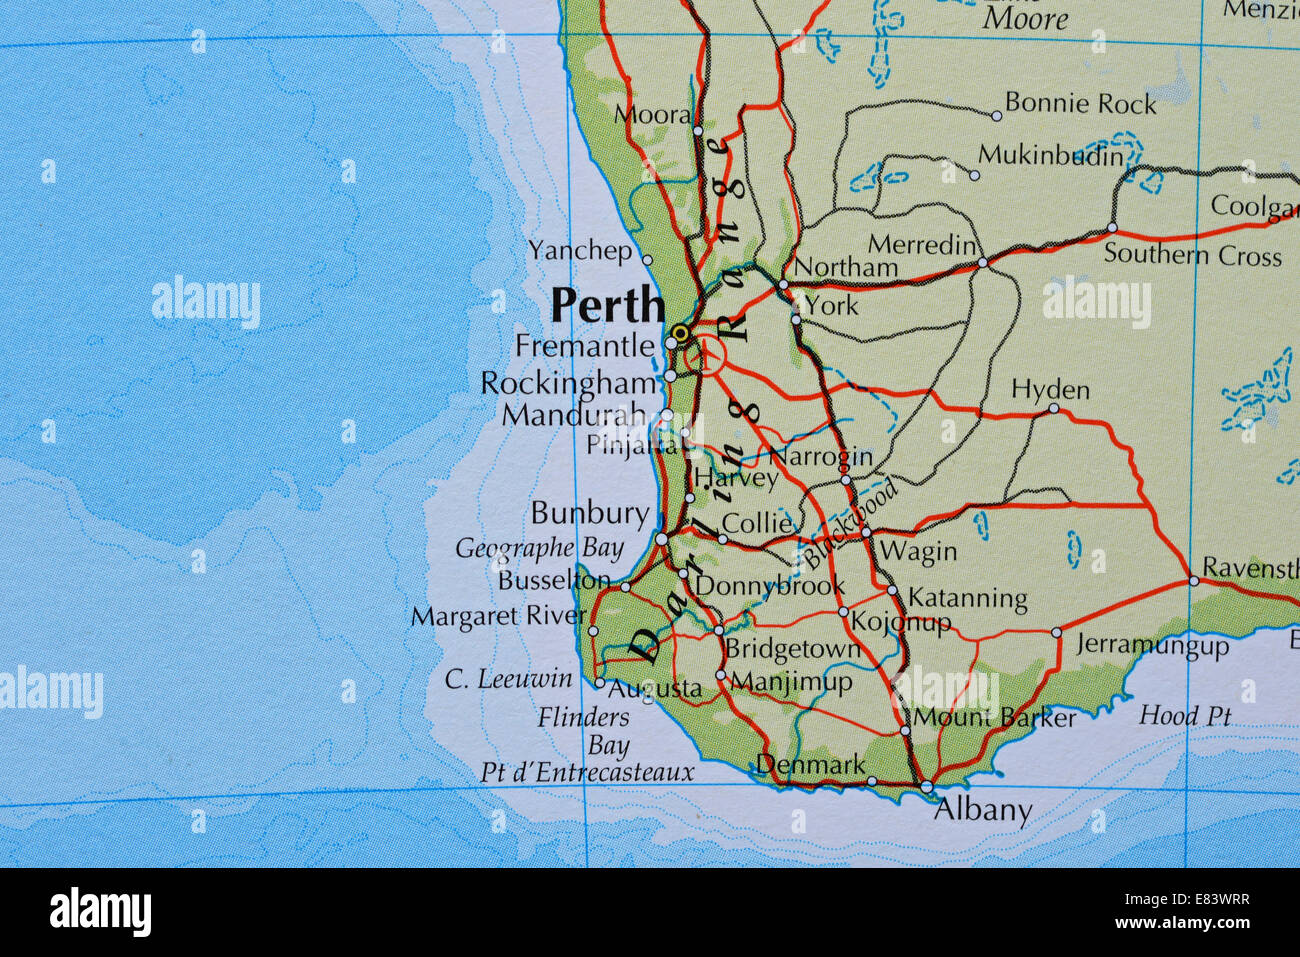 Map of perth australia stock photo 73844843 alamy map of perth australia gumiabroncs Image collections